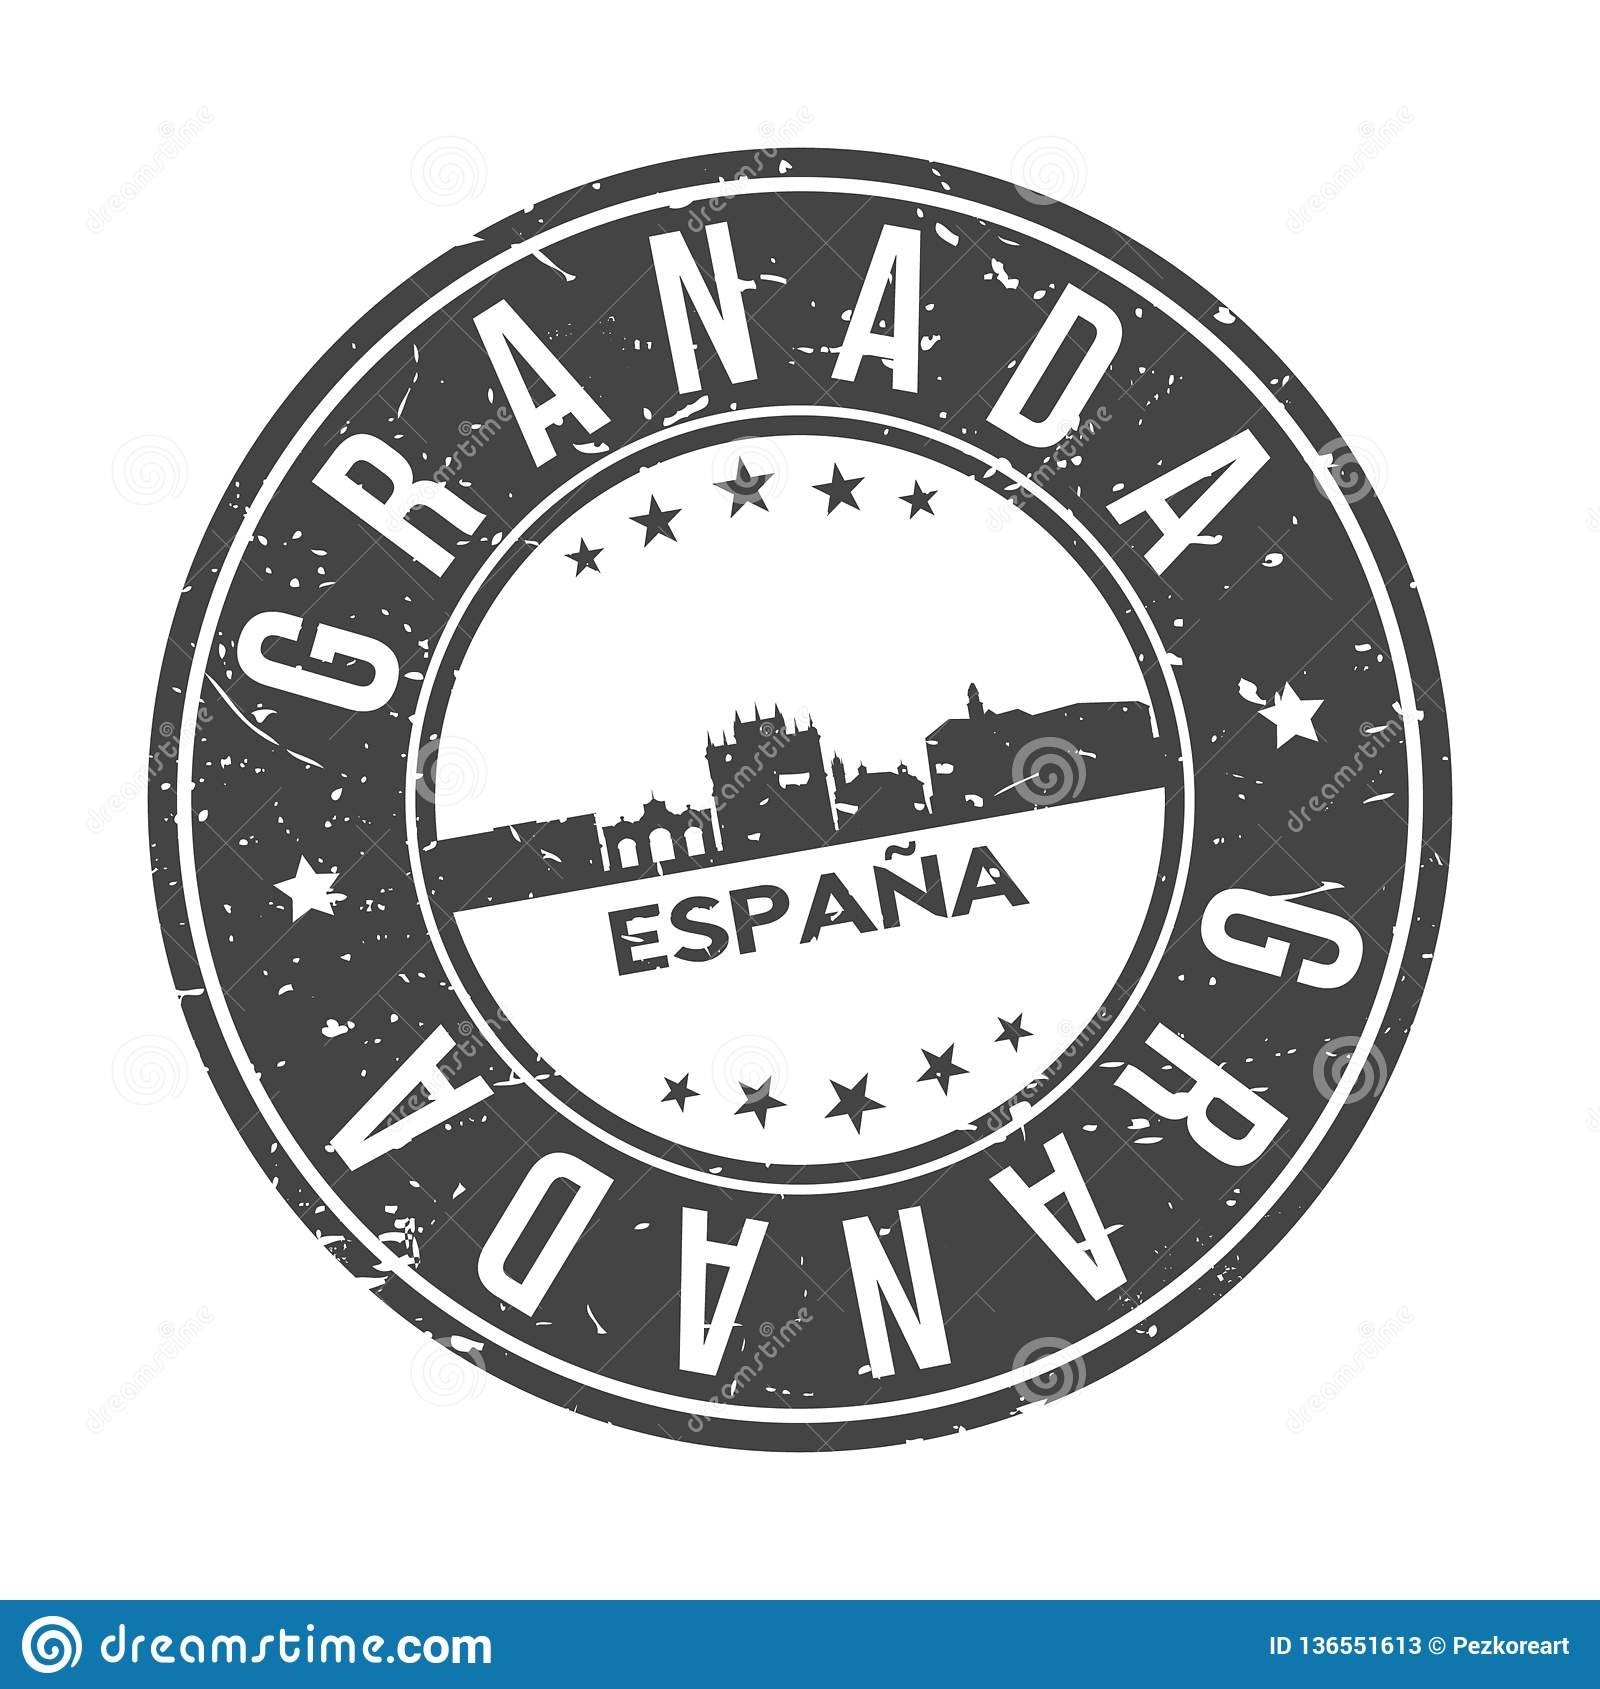 Granada Andalucia Spain Round Button City Skyline Design Stamp Vector Travel Tourism